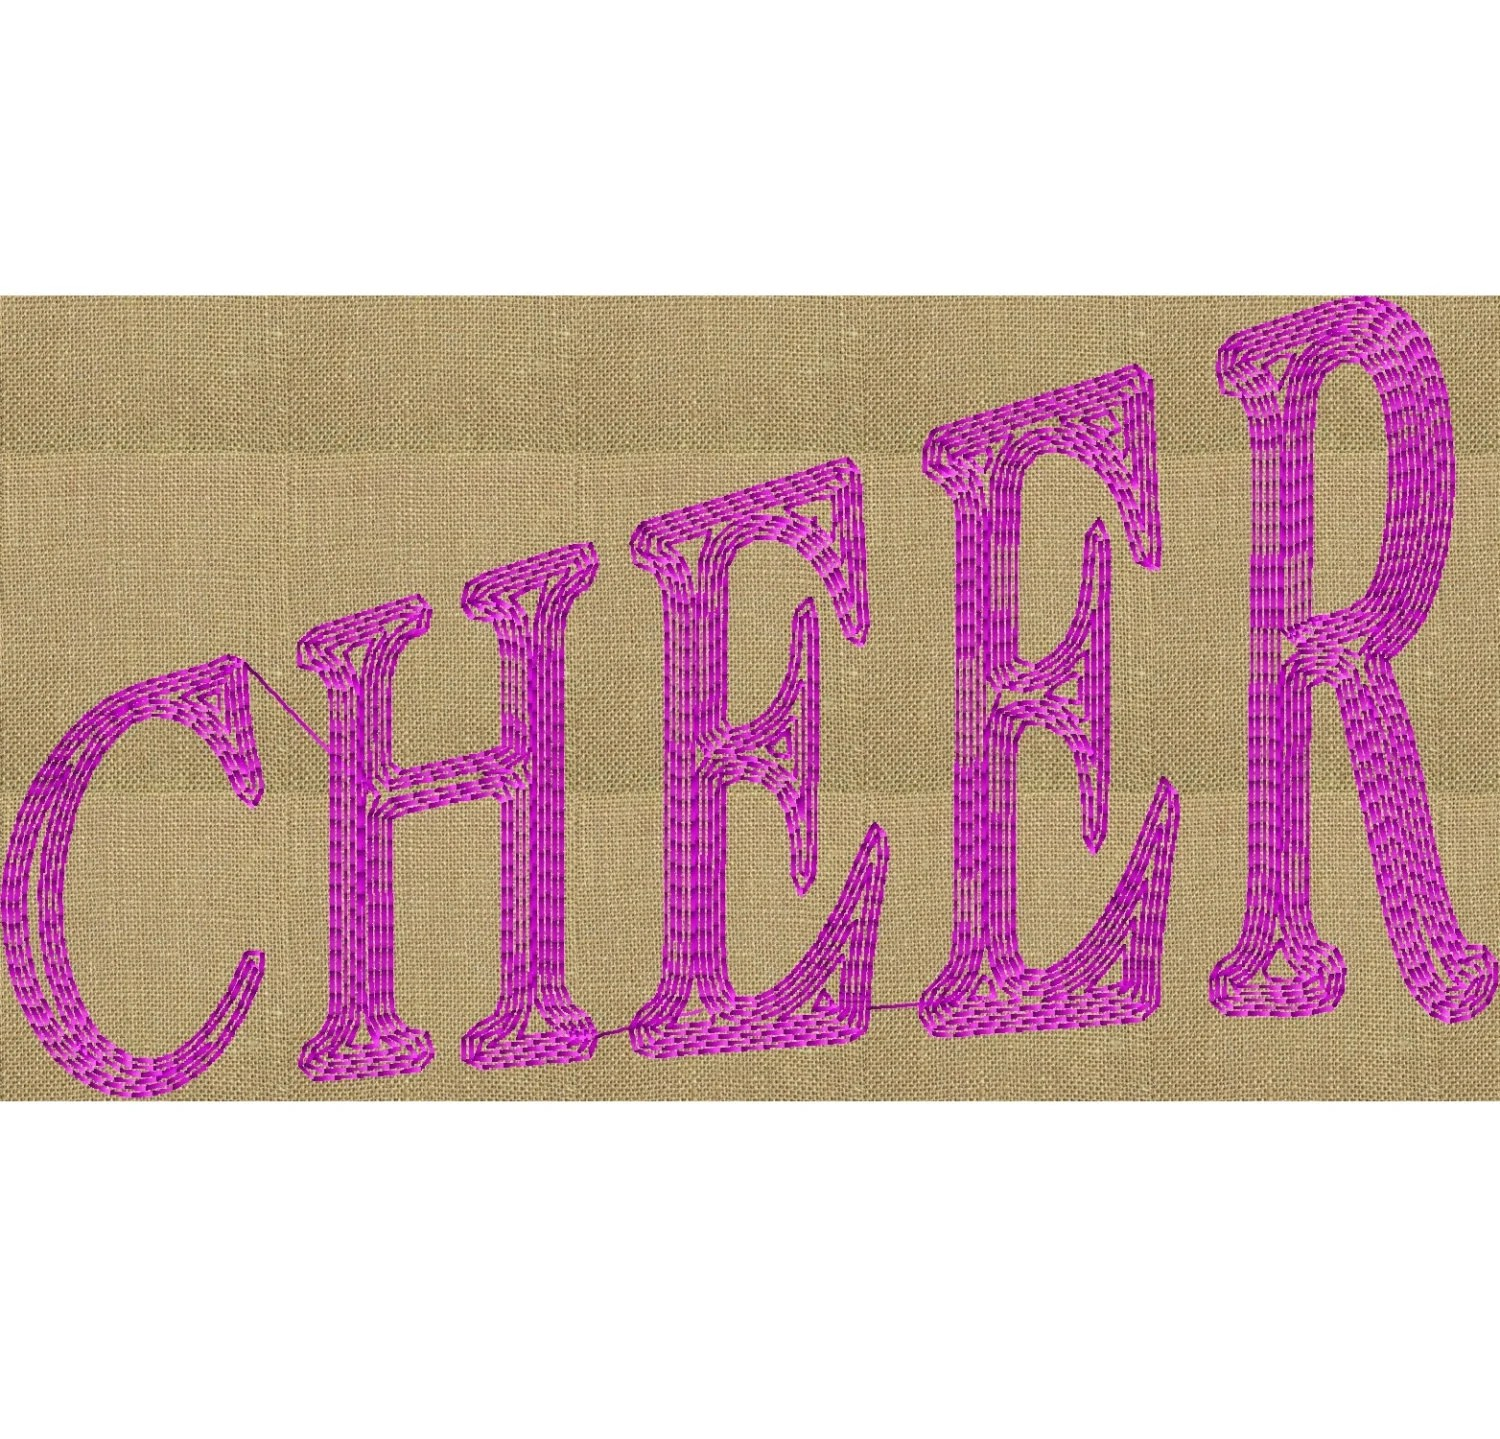 Cheer word Monogram Embroidery Design Font not included Etsy - word design frames